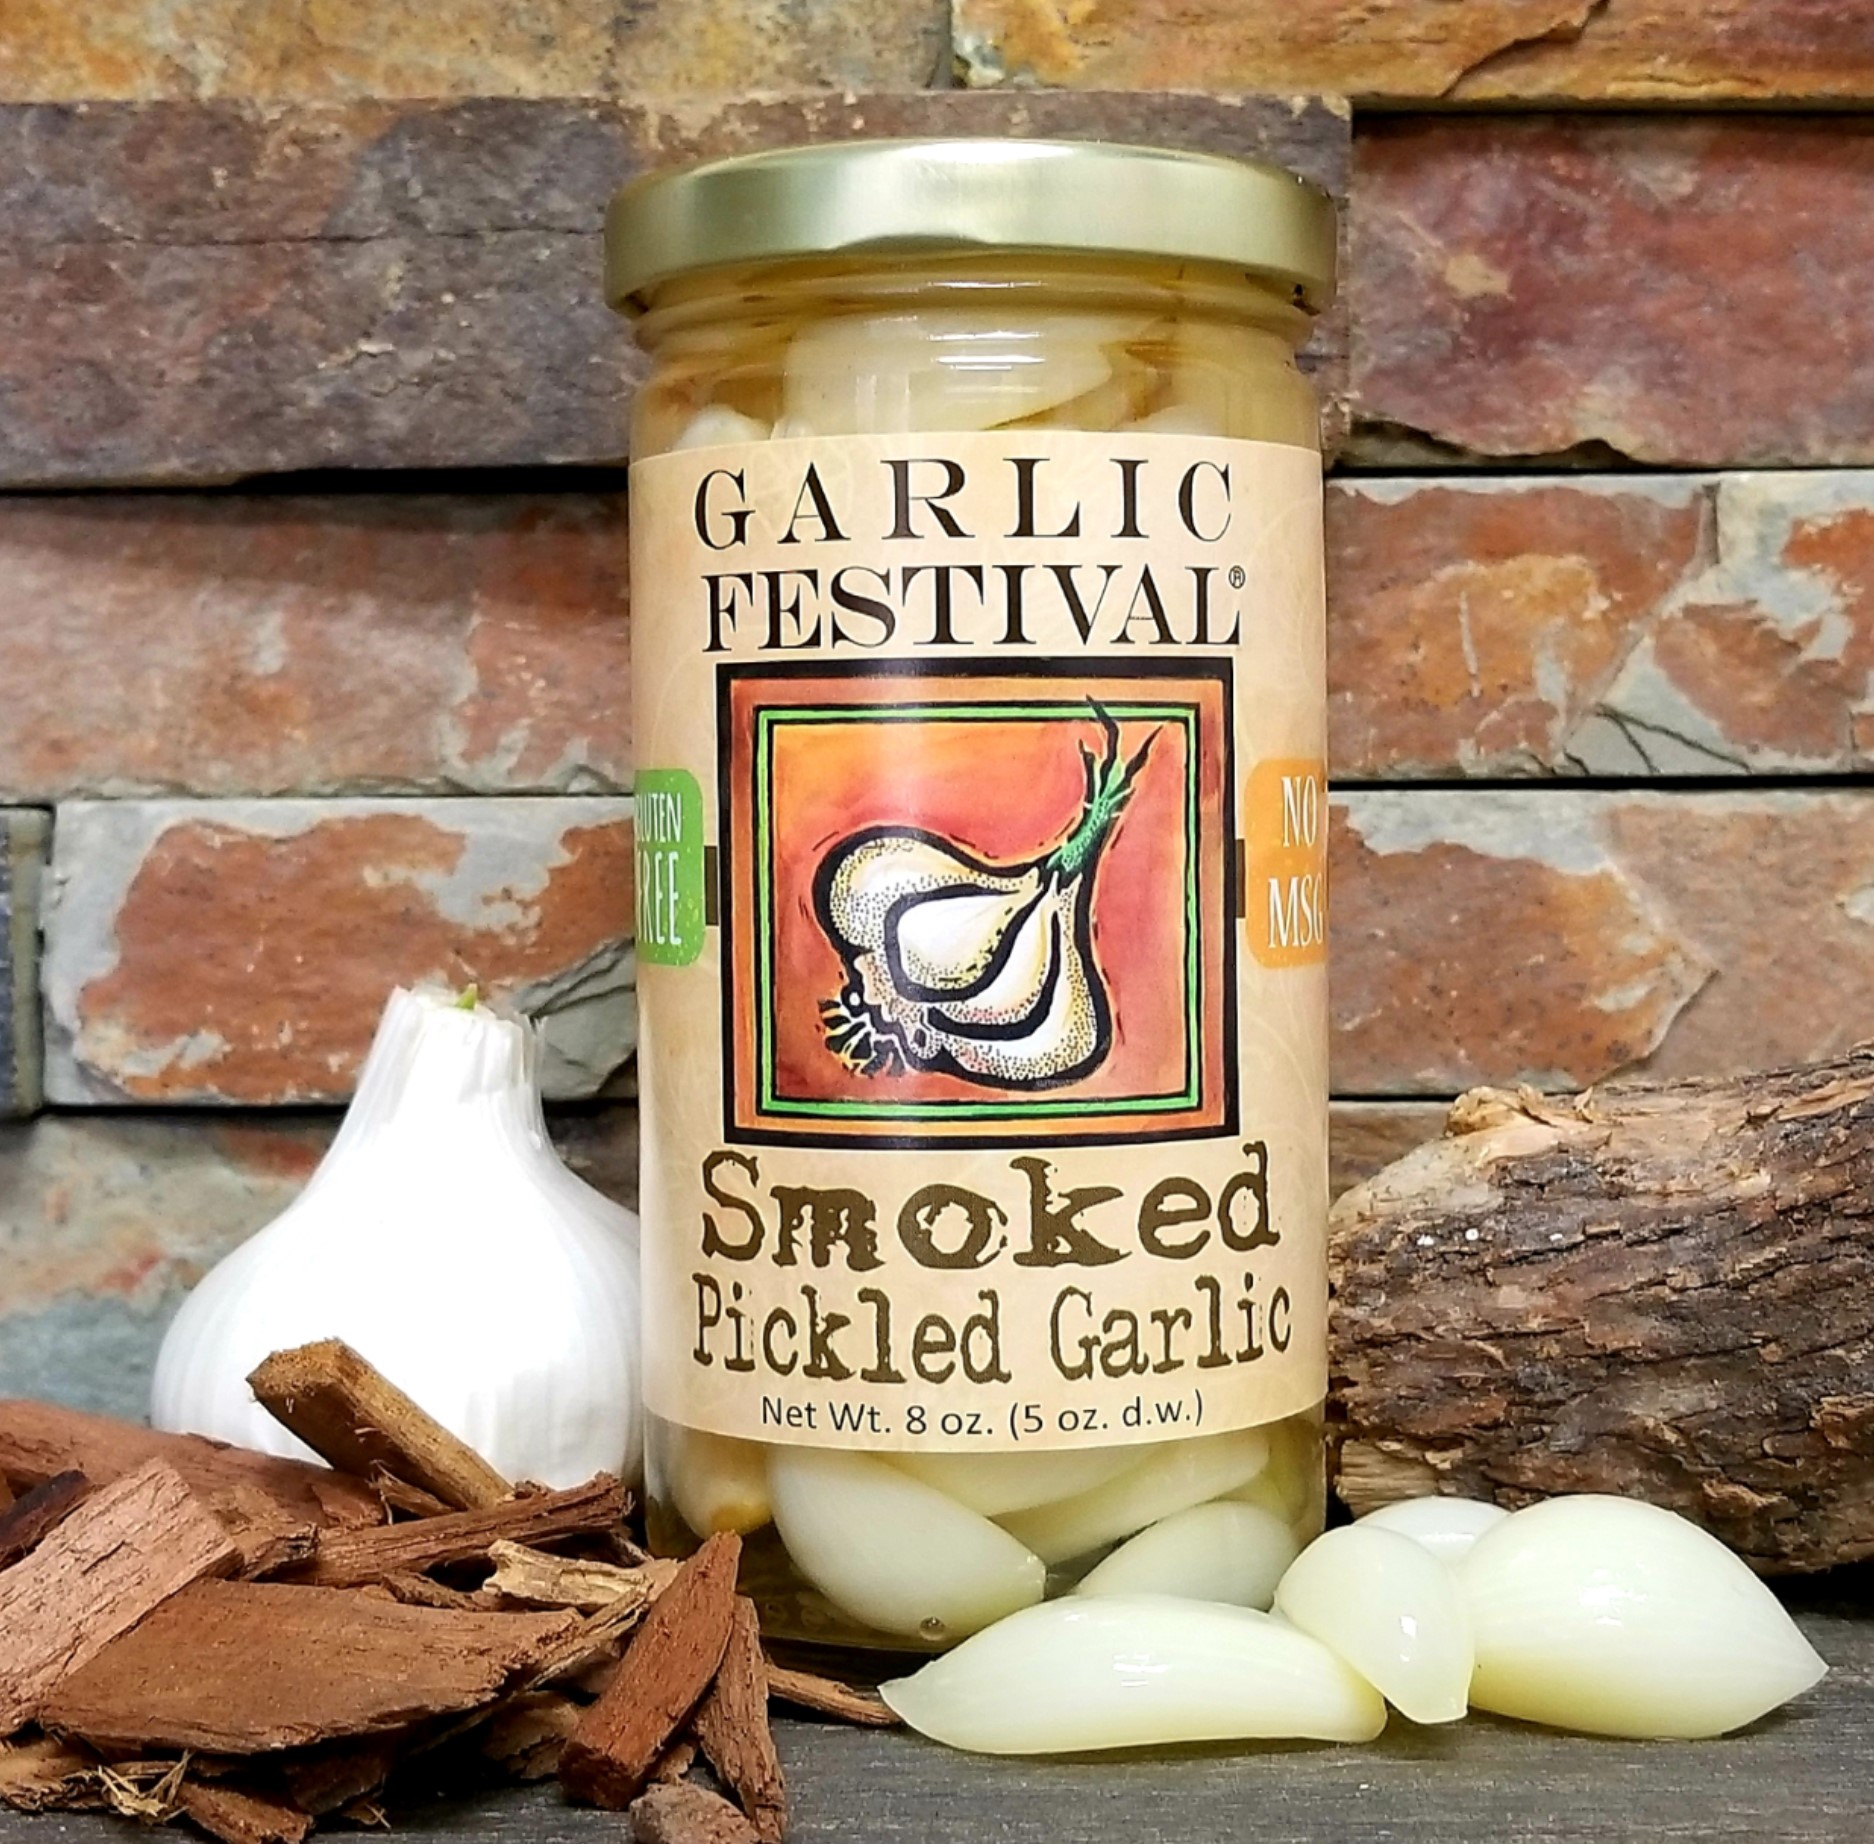 Smoked Pickled Garlic